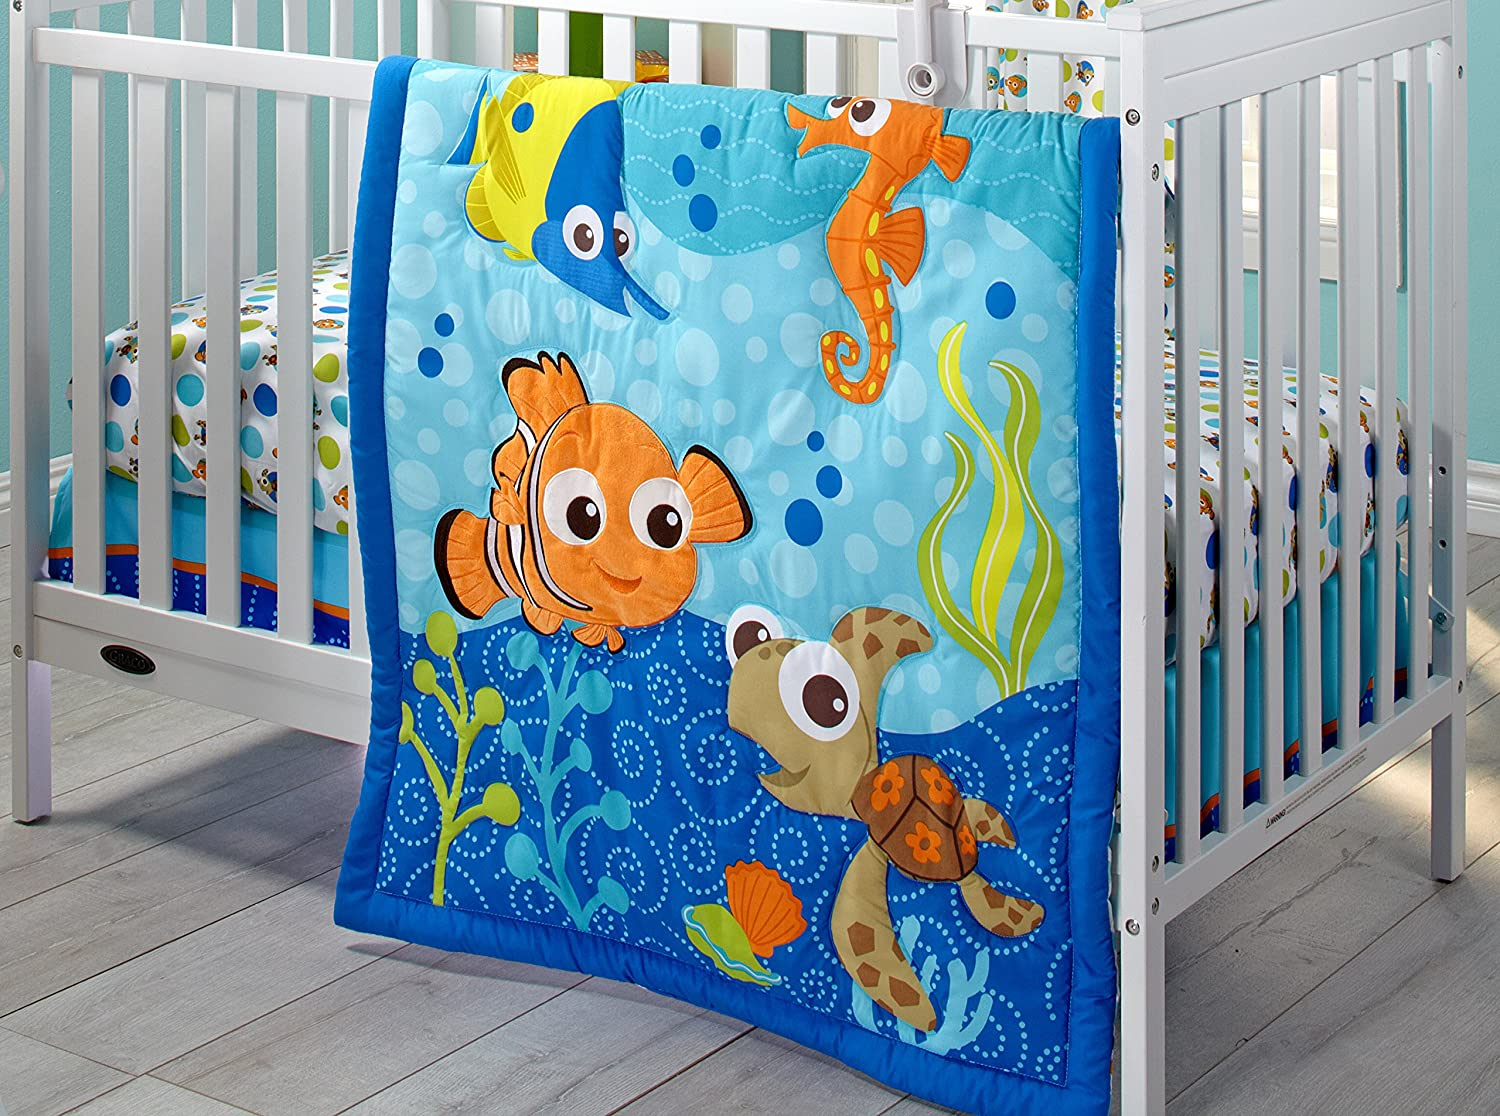 Disney Nemo 3 Piece Crib Bedding Set by Disney [並行輸入品]   B00O2VPFHG